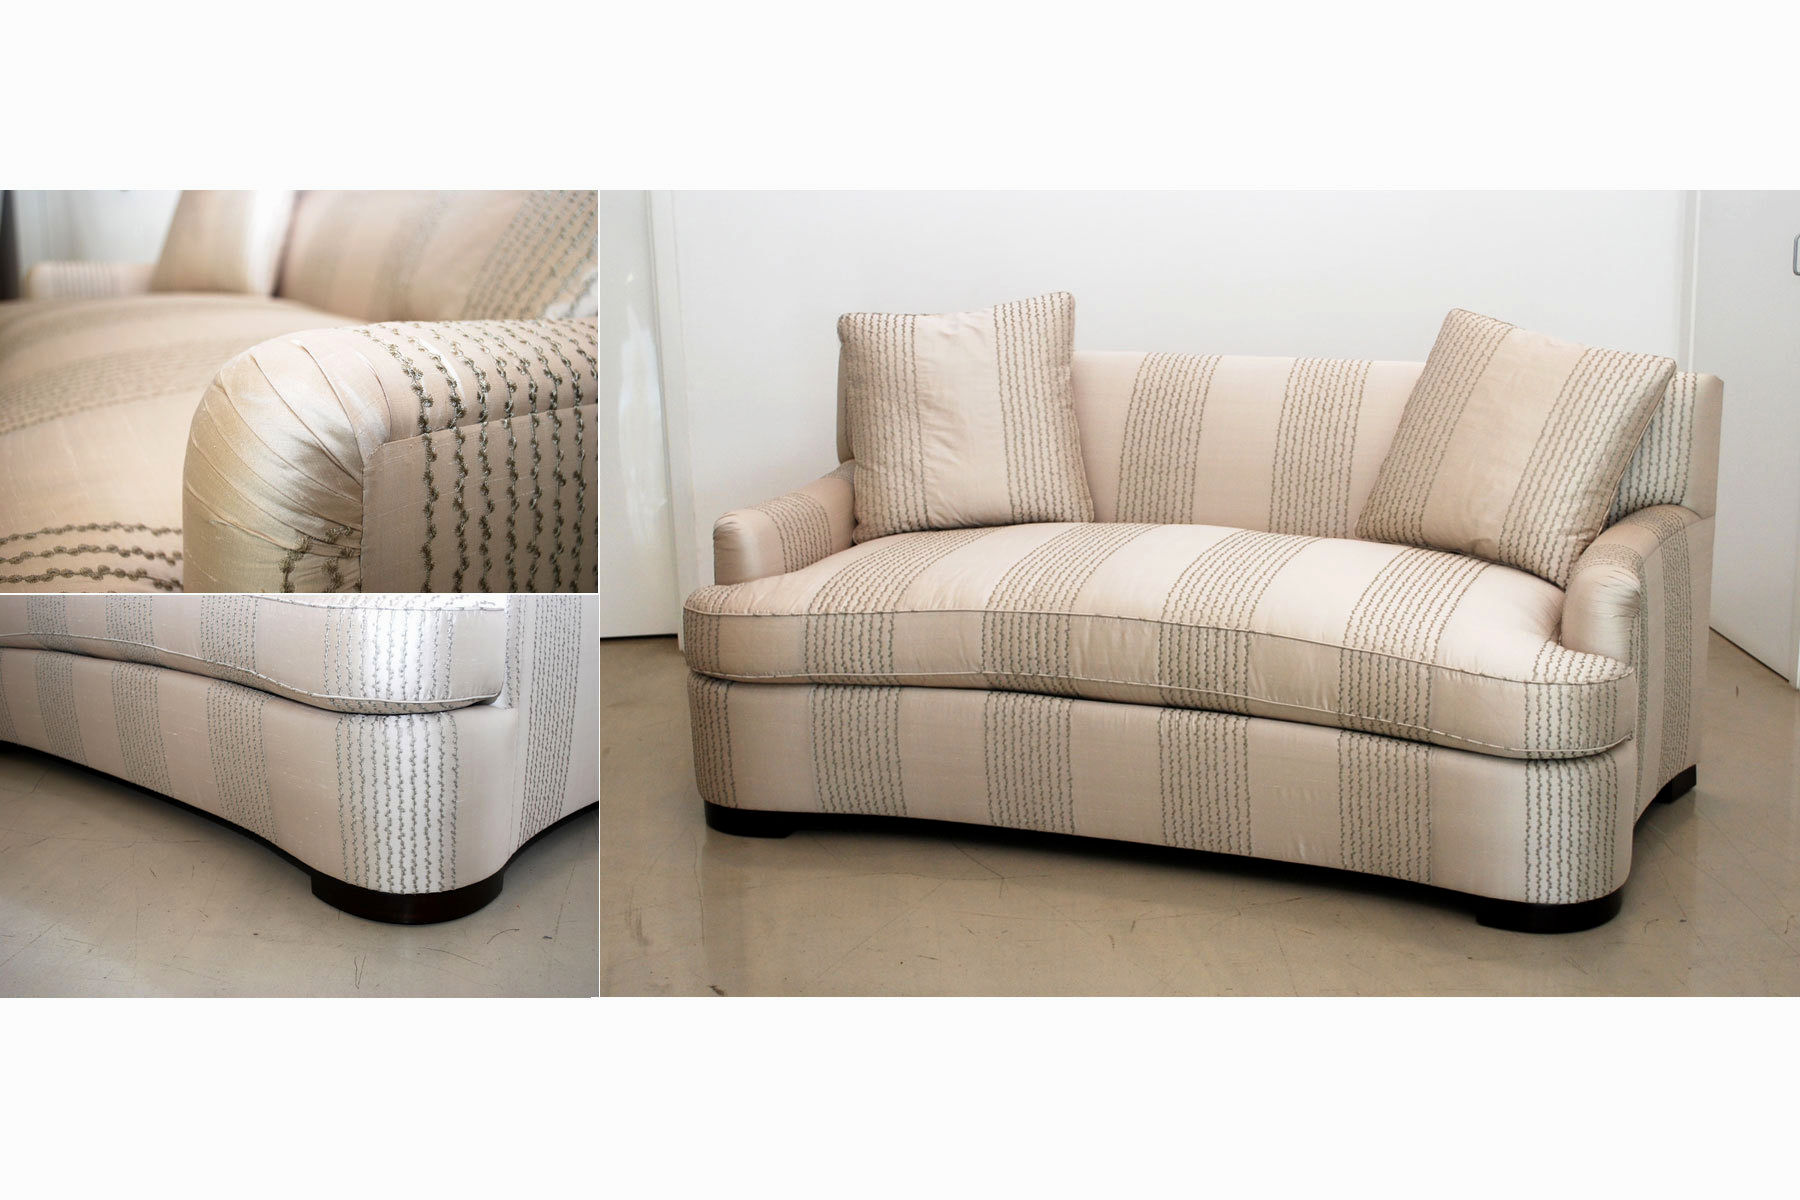 latest circle sectional sofa gallery-Fascinating Circle Sectional sofa Image